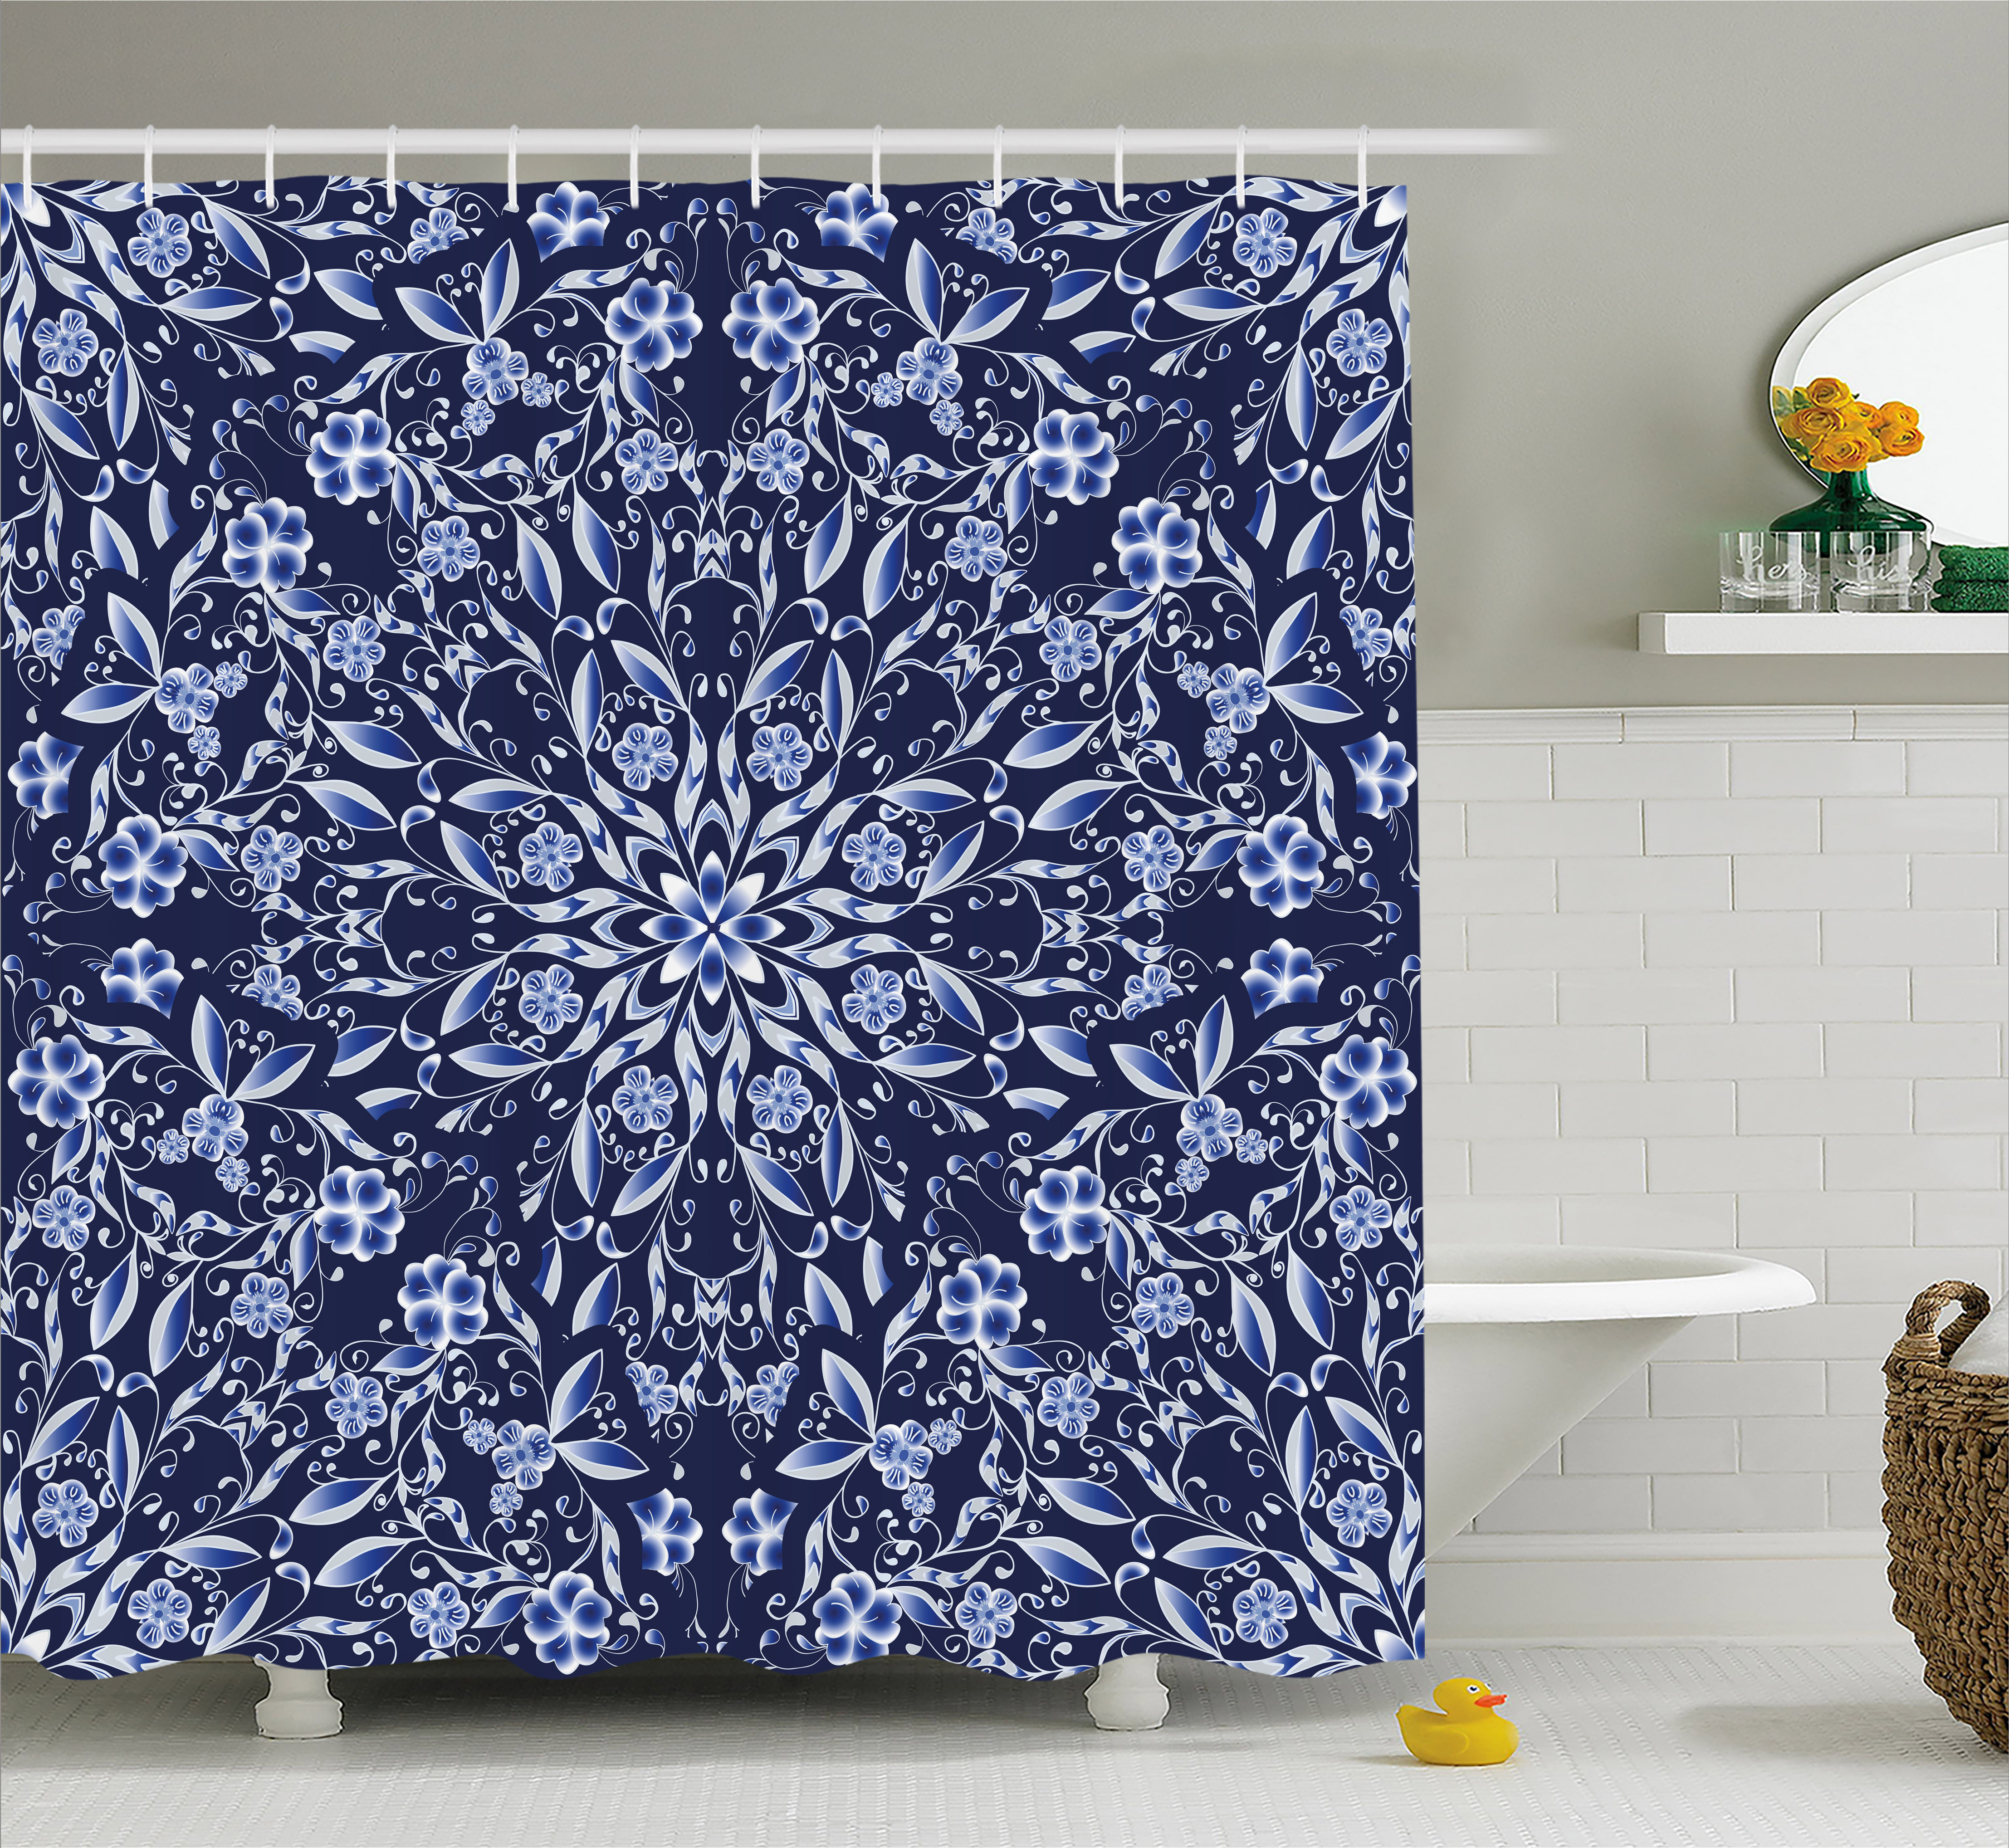 dark blue shower curtain chinese painting style artwork traditional floral interlace print fabric bathroom